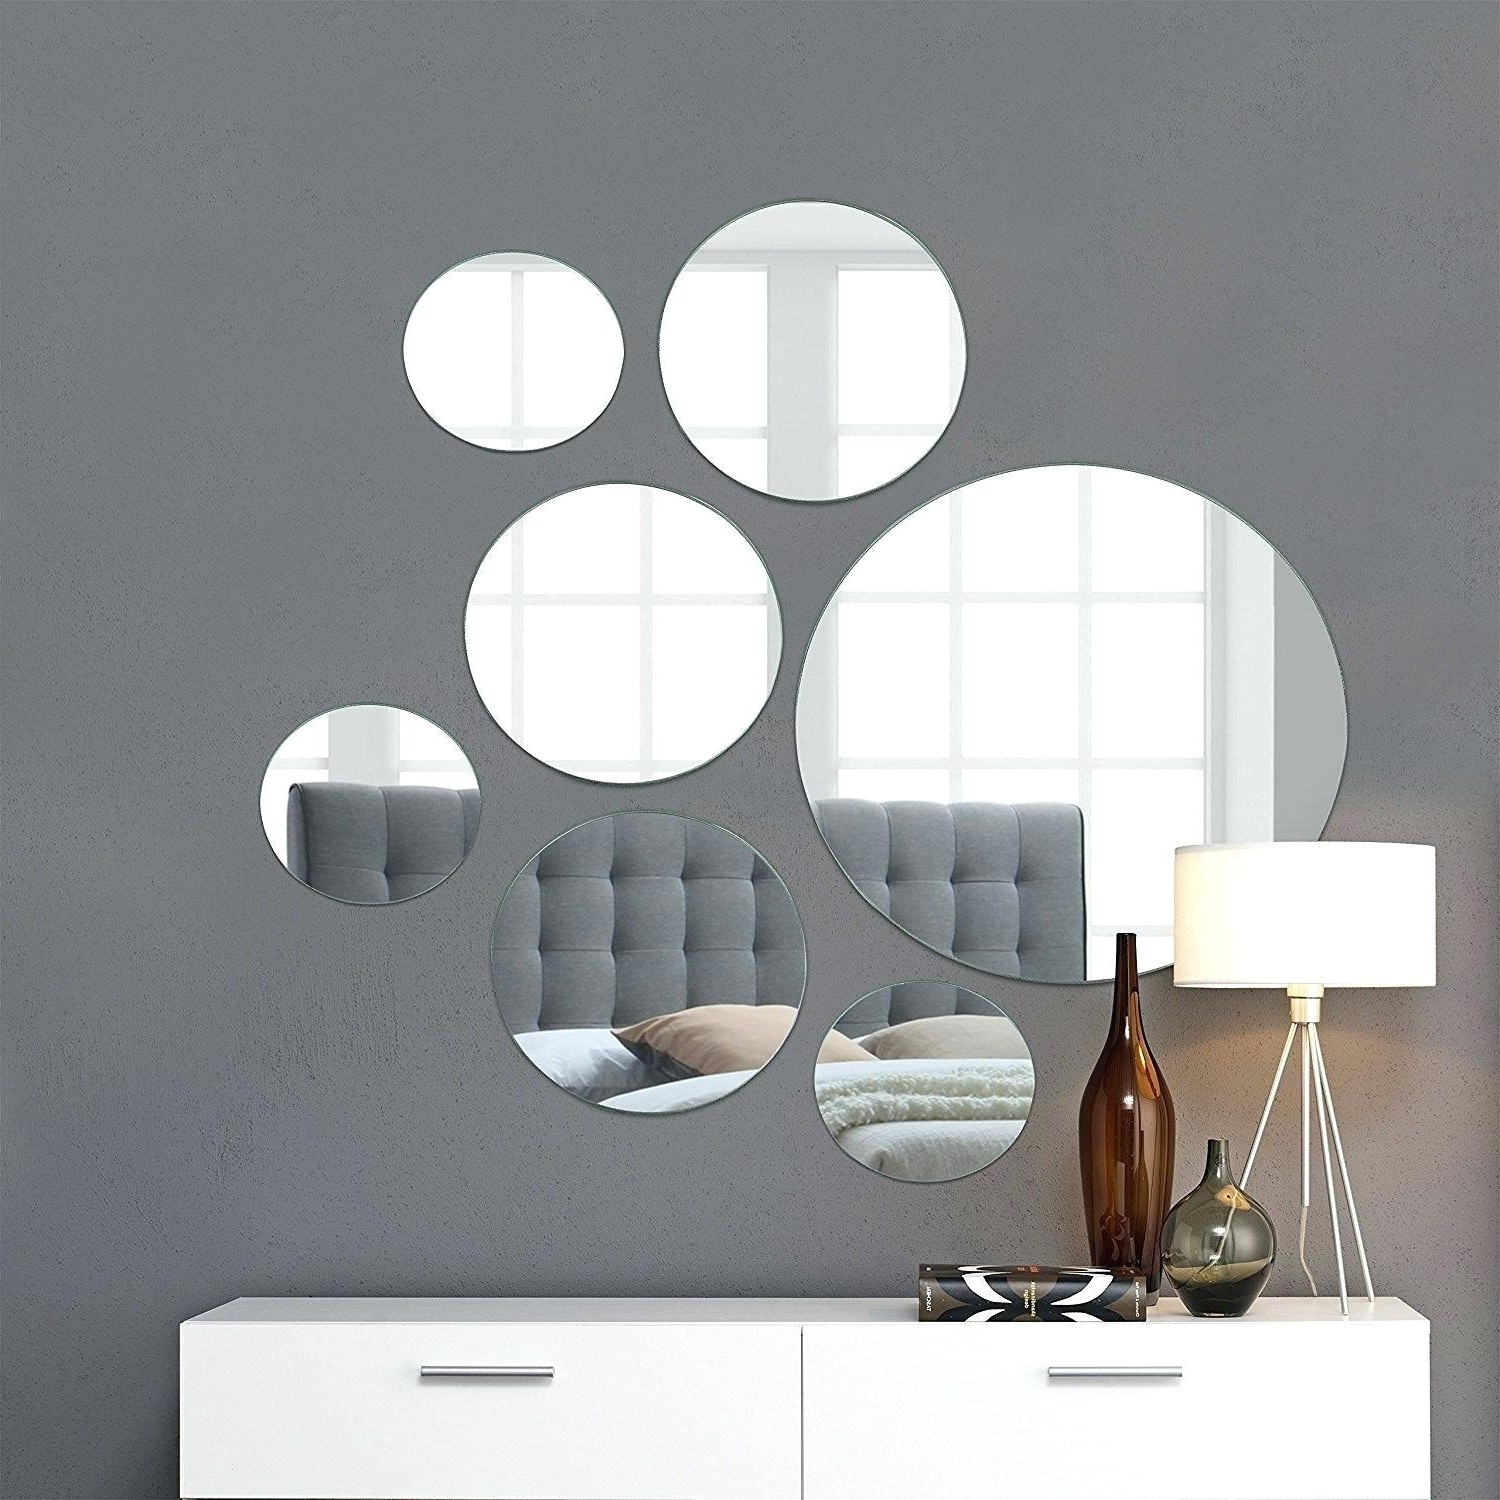 Preferred Cheap Decorative Wall Mirror Sets Mirrors Buy Online At Overstock Pertaining To Decorating Wall Mirrors (View 16 of 20)